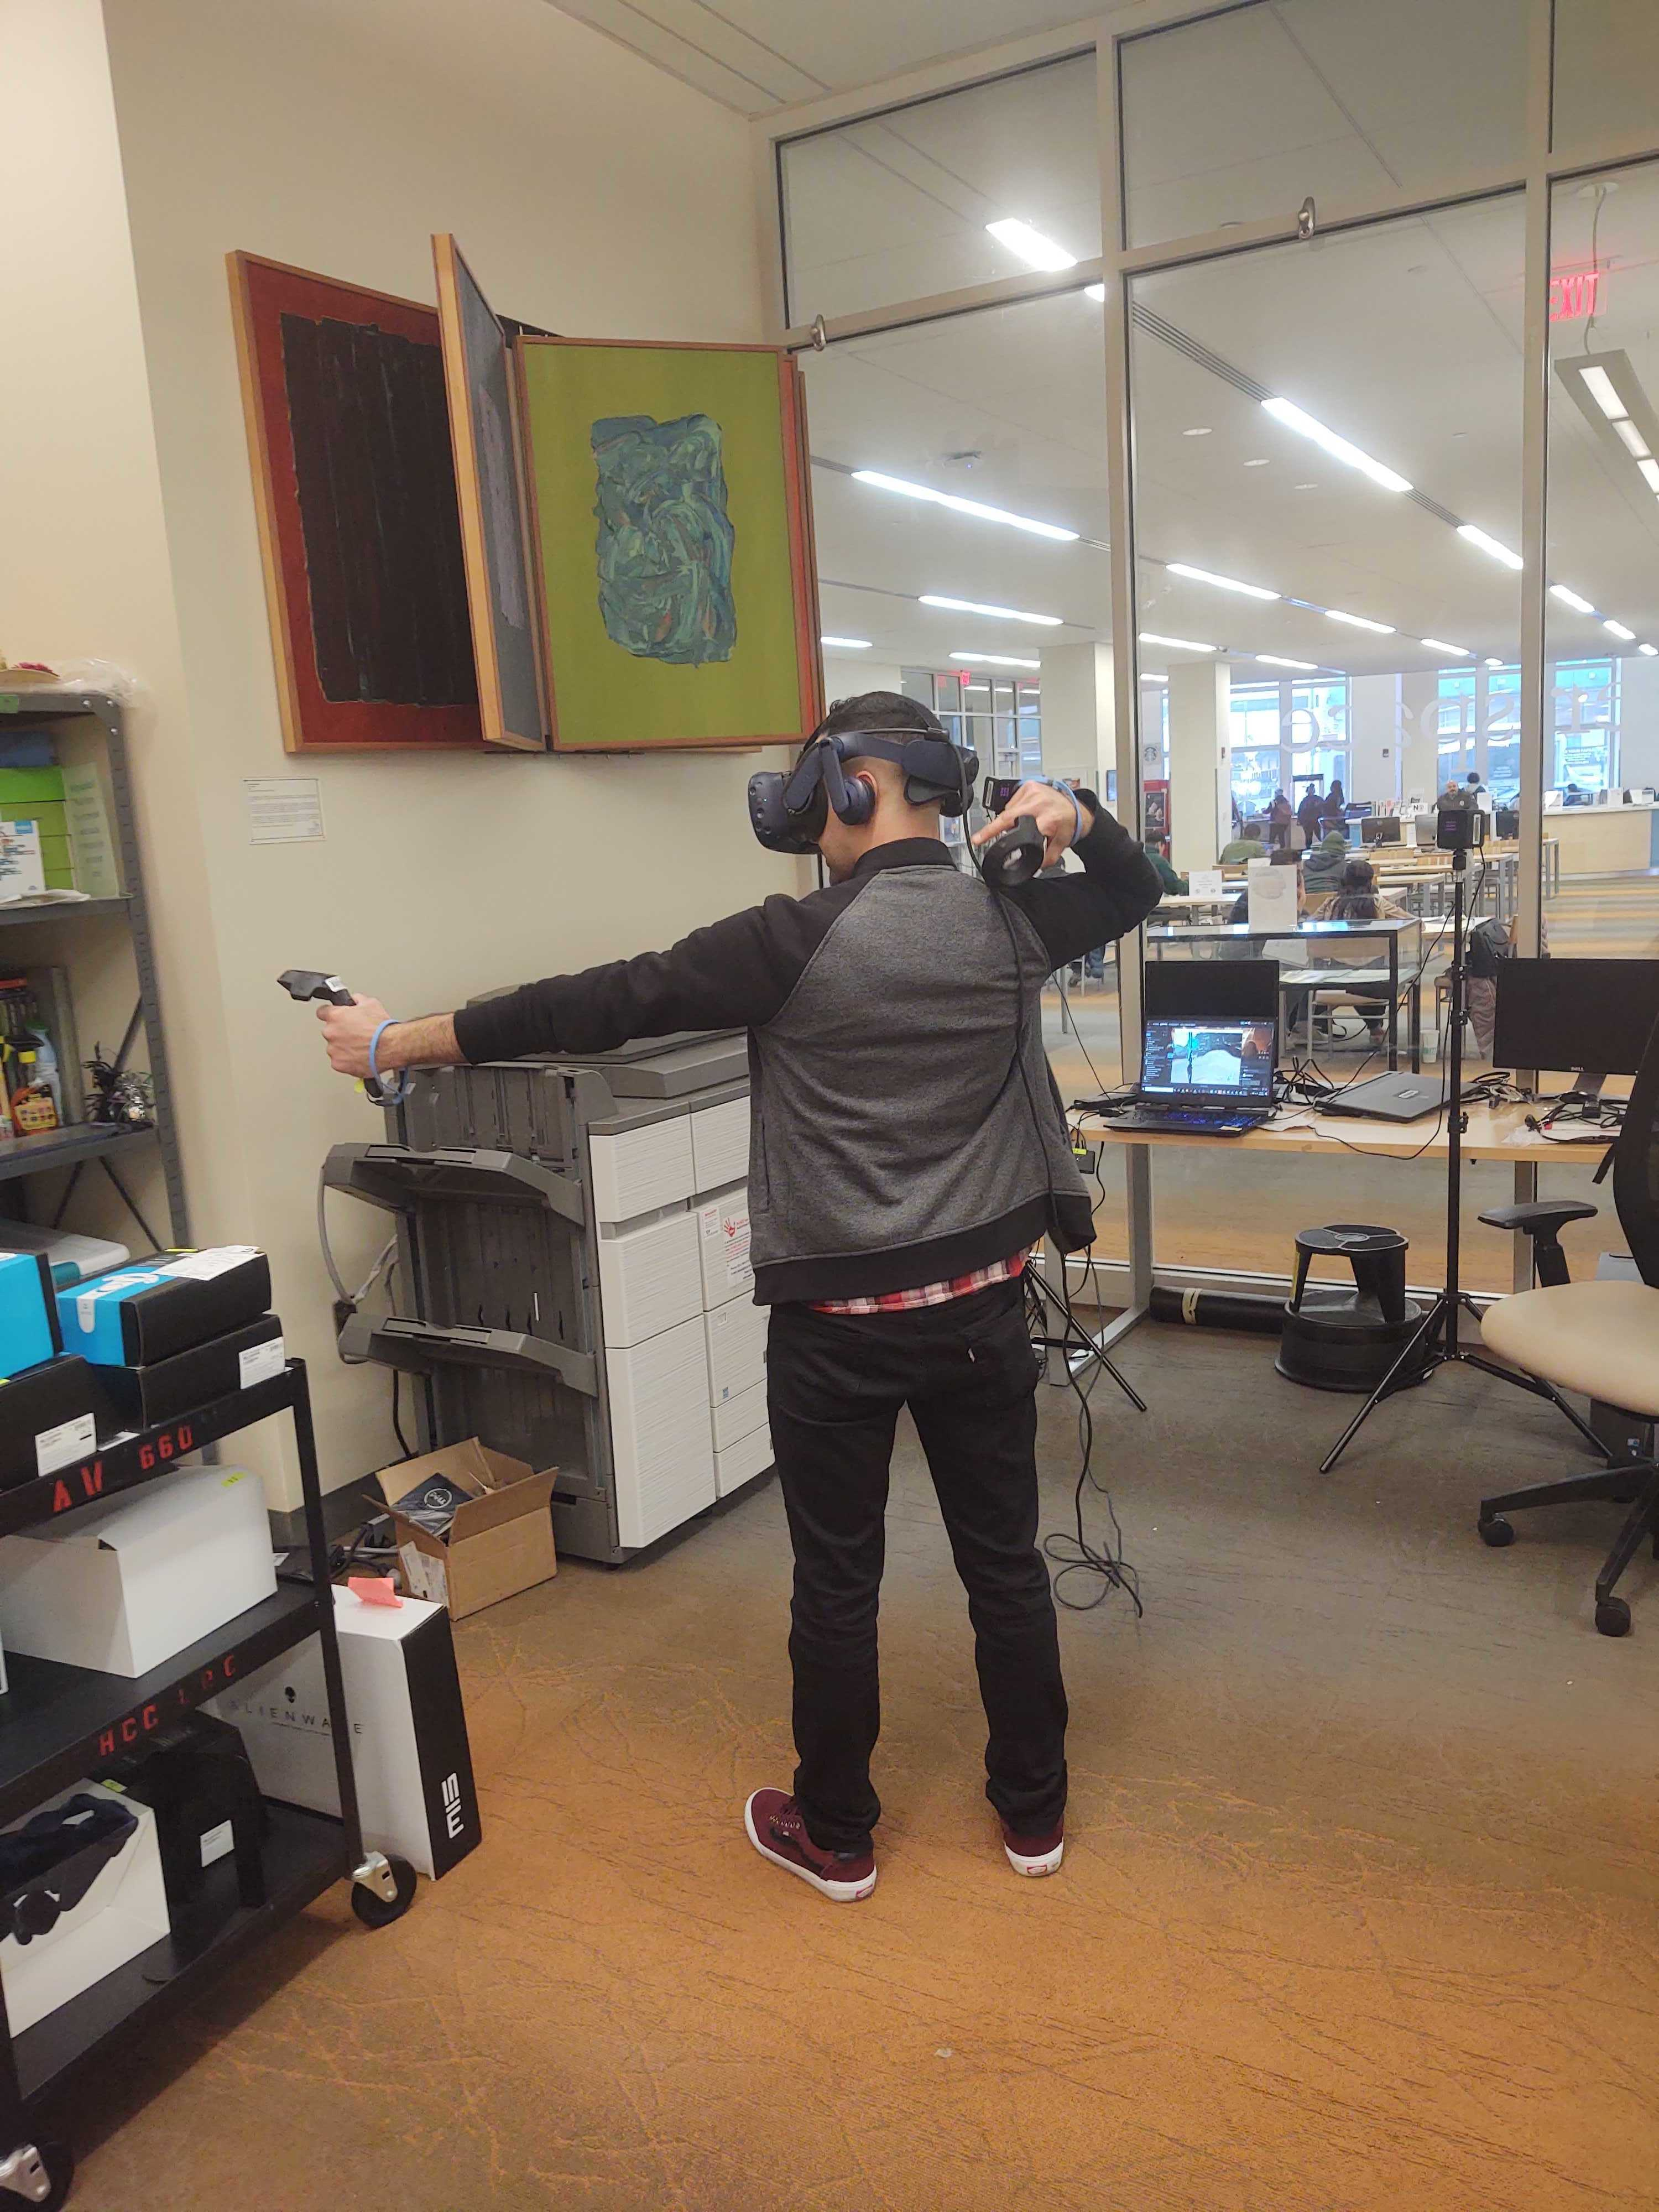 Staff playing VR games